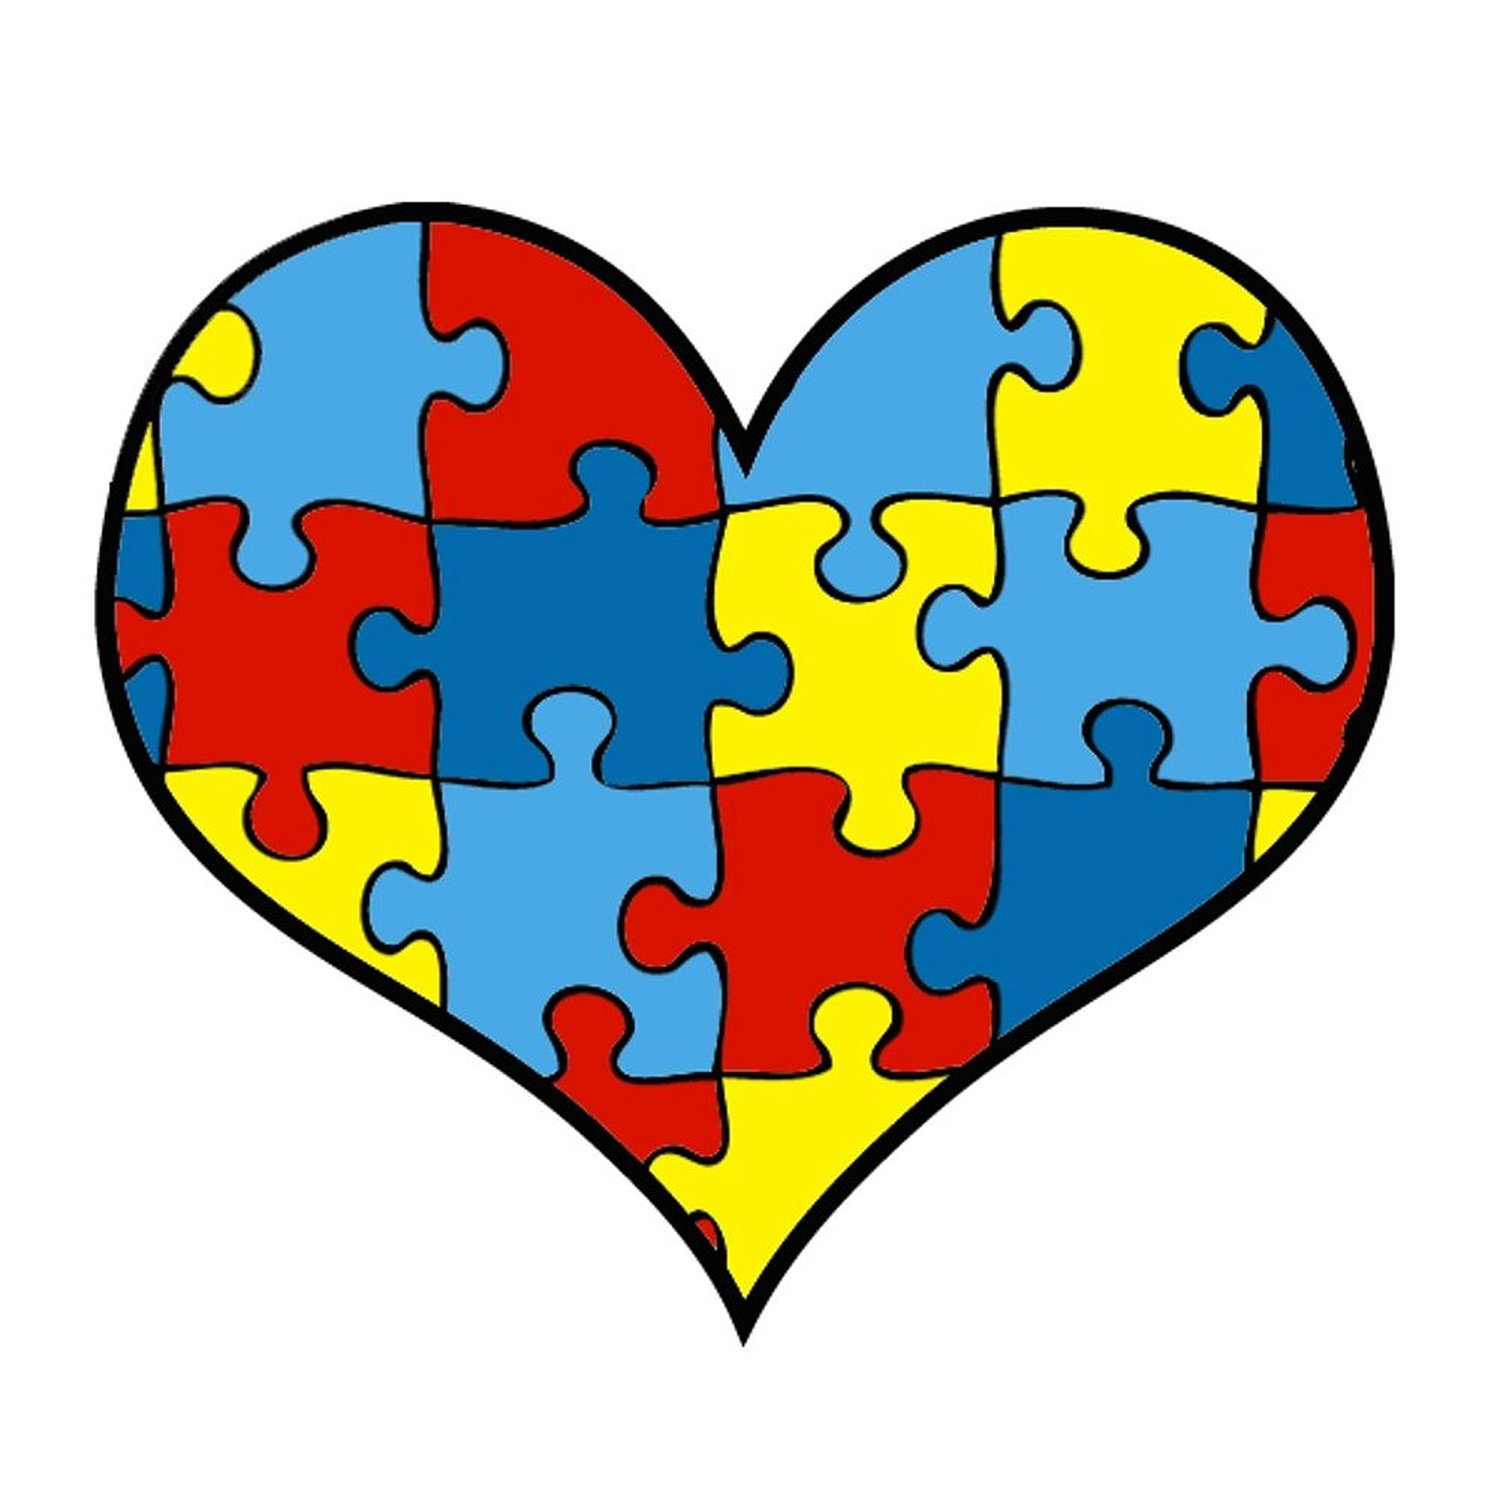 Superman puzzle piece clipart clipart library library Free Autism Puzzle, Download Free Clip Art, Free Clip Art on Clipart ... clipart library library